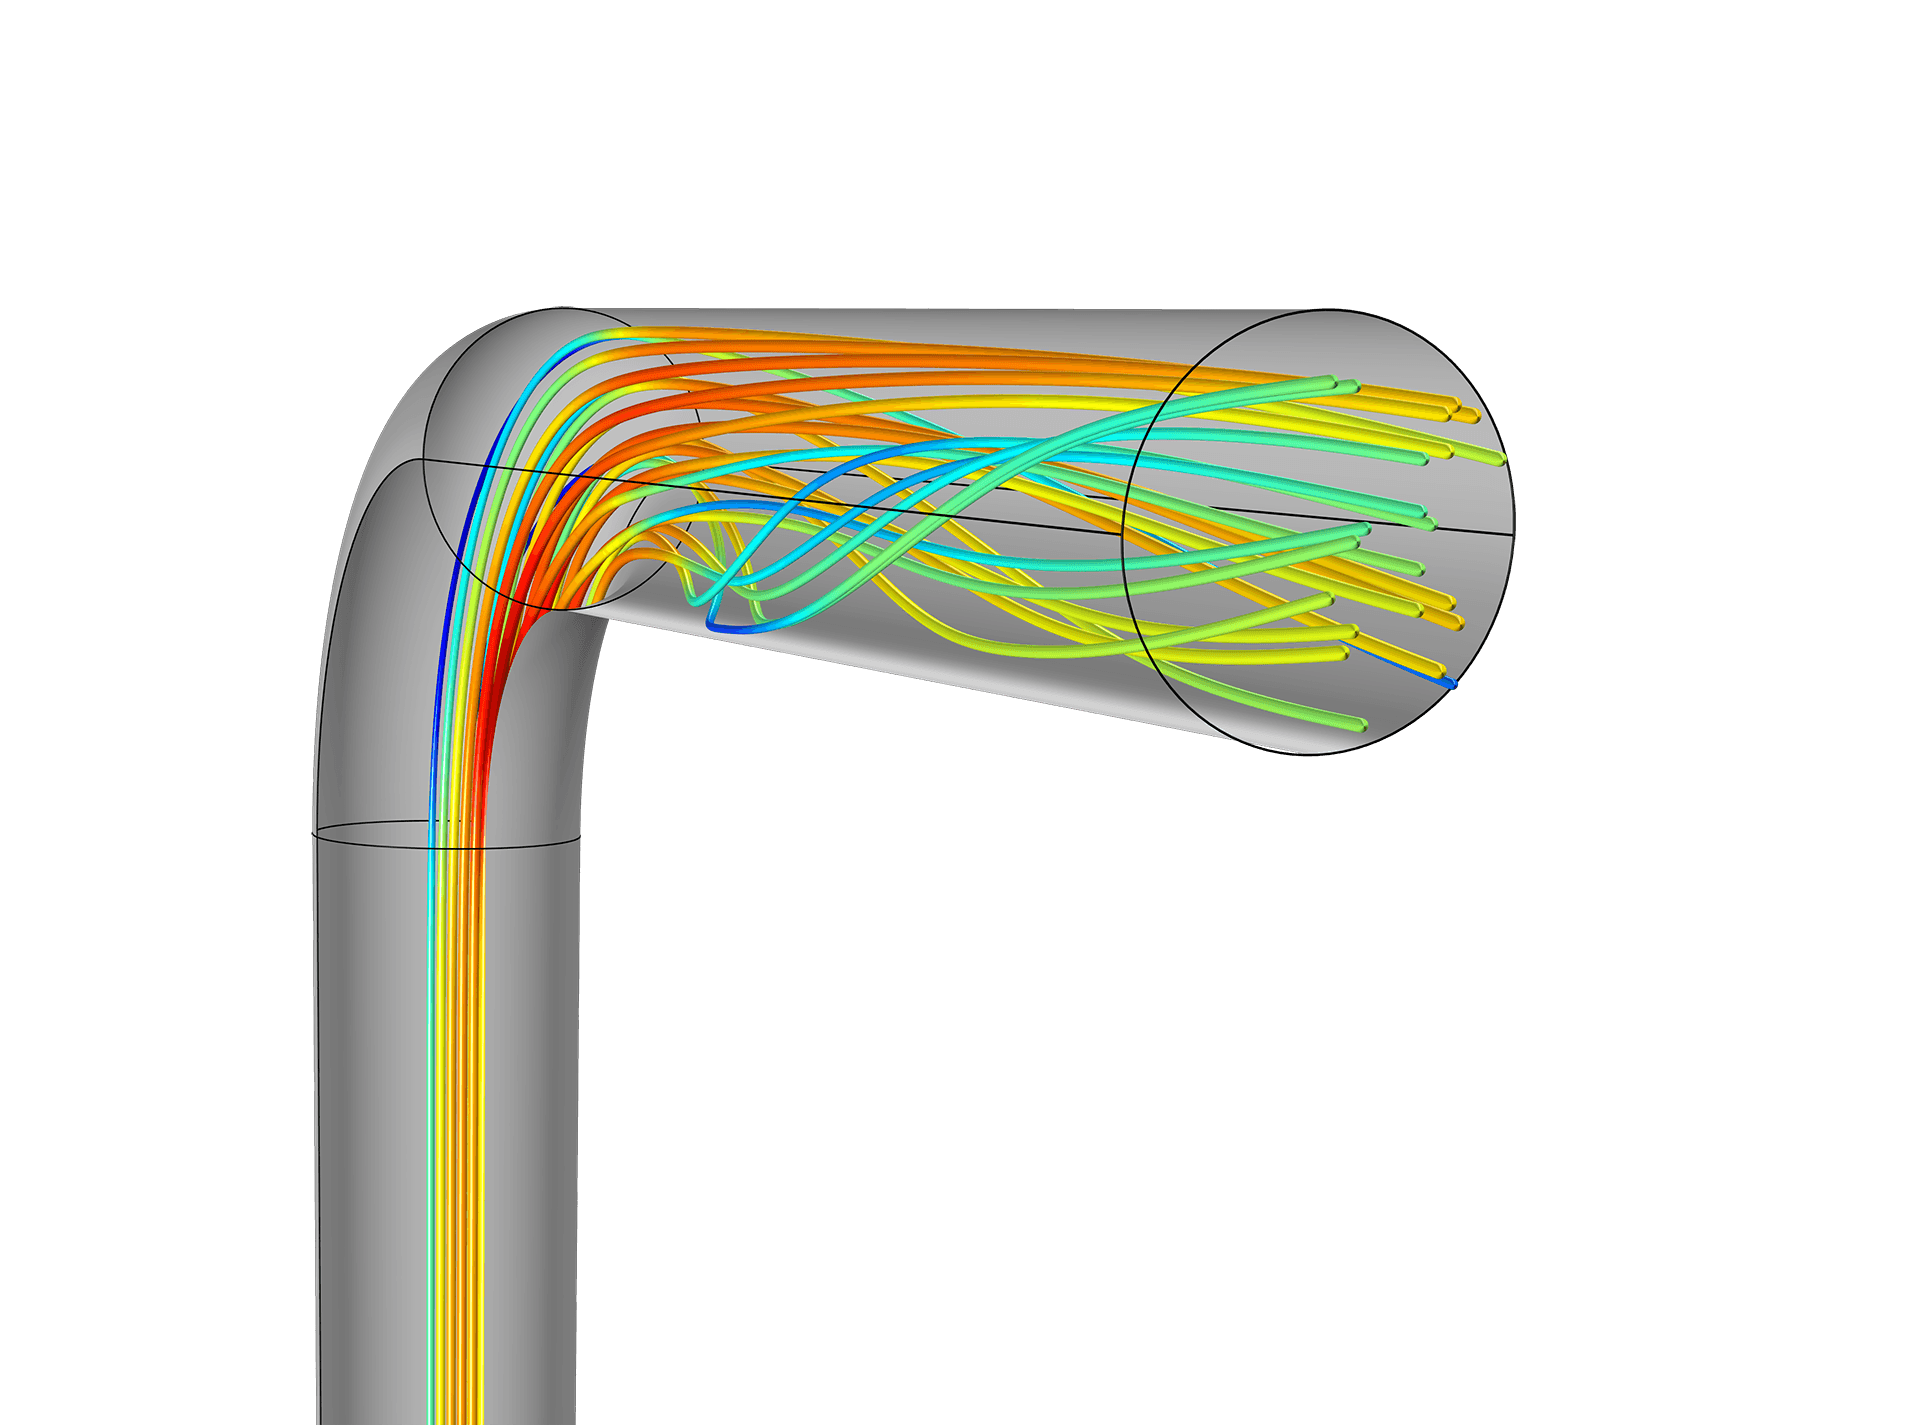 Comsol Version 50 Release Highlights Pin Wiring Two 3 Way Motion Detector Switches On Pinterest Turbulent Flow Simulation Of In A Piping System Results Show Separation Zone After The Bend Vortices Outlet Section